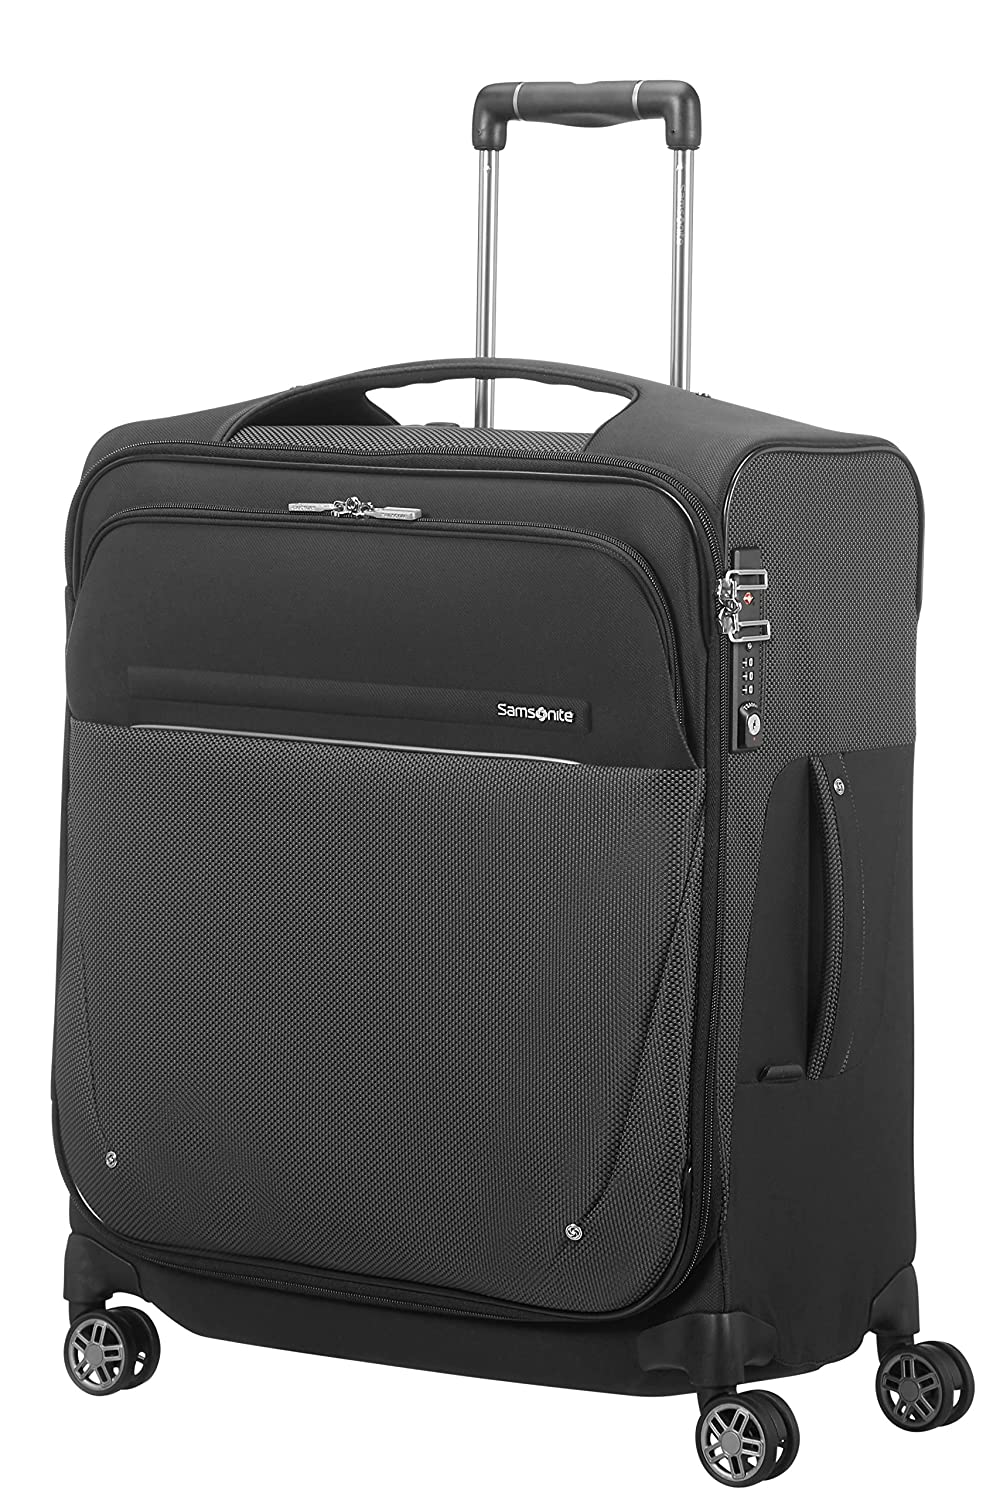 SAMSONITE B-Lite Icon - Spinner 56/20, 55.5 L, 2 KG Equipaje de Mano, Negro (Black): Amazon.es: Equipaje